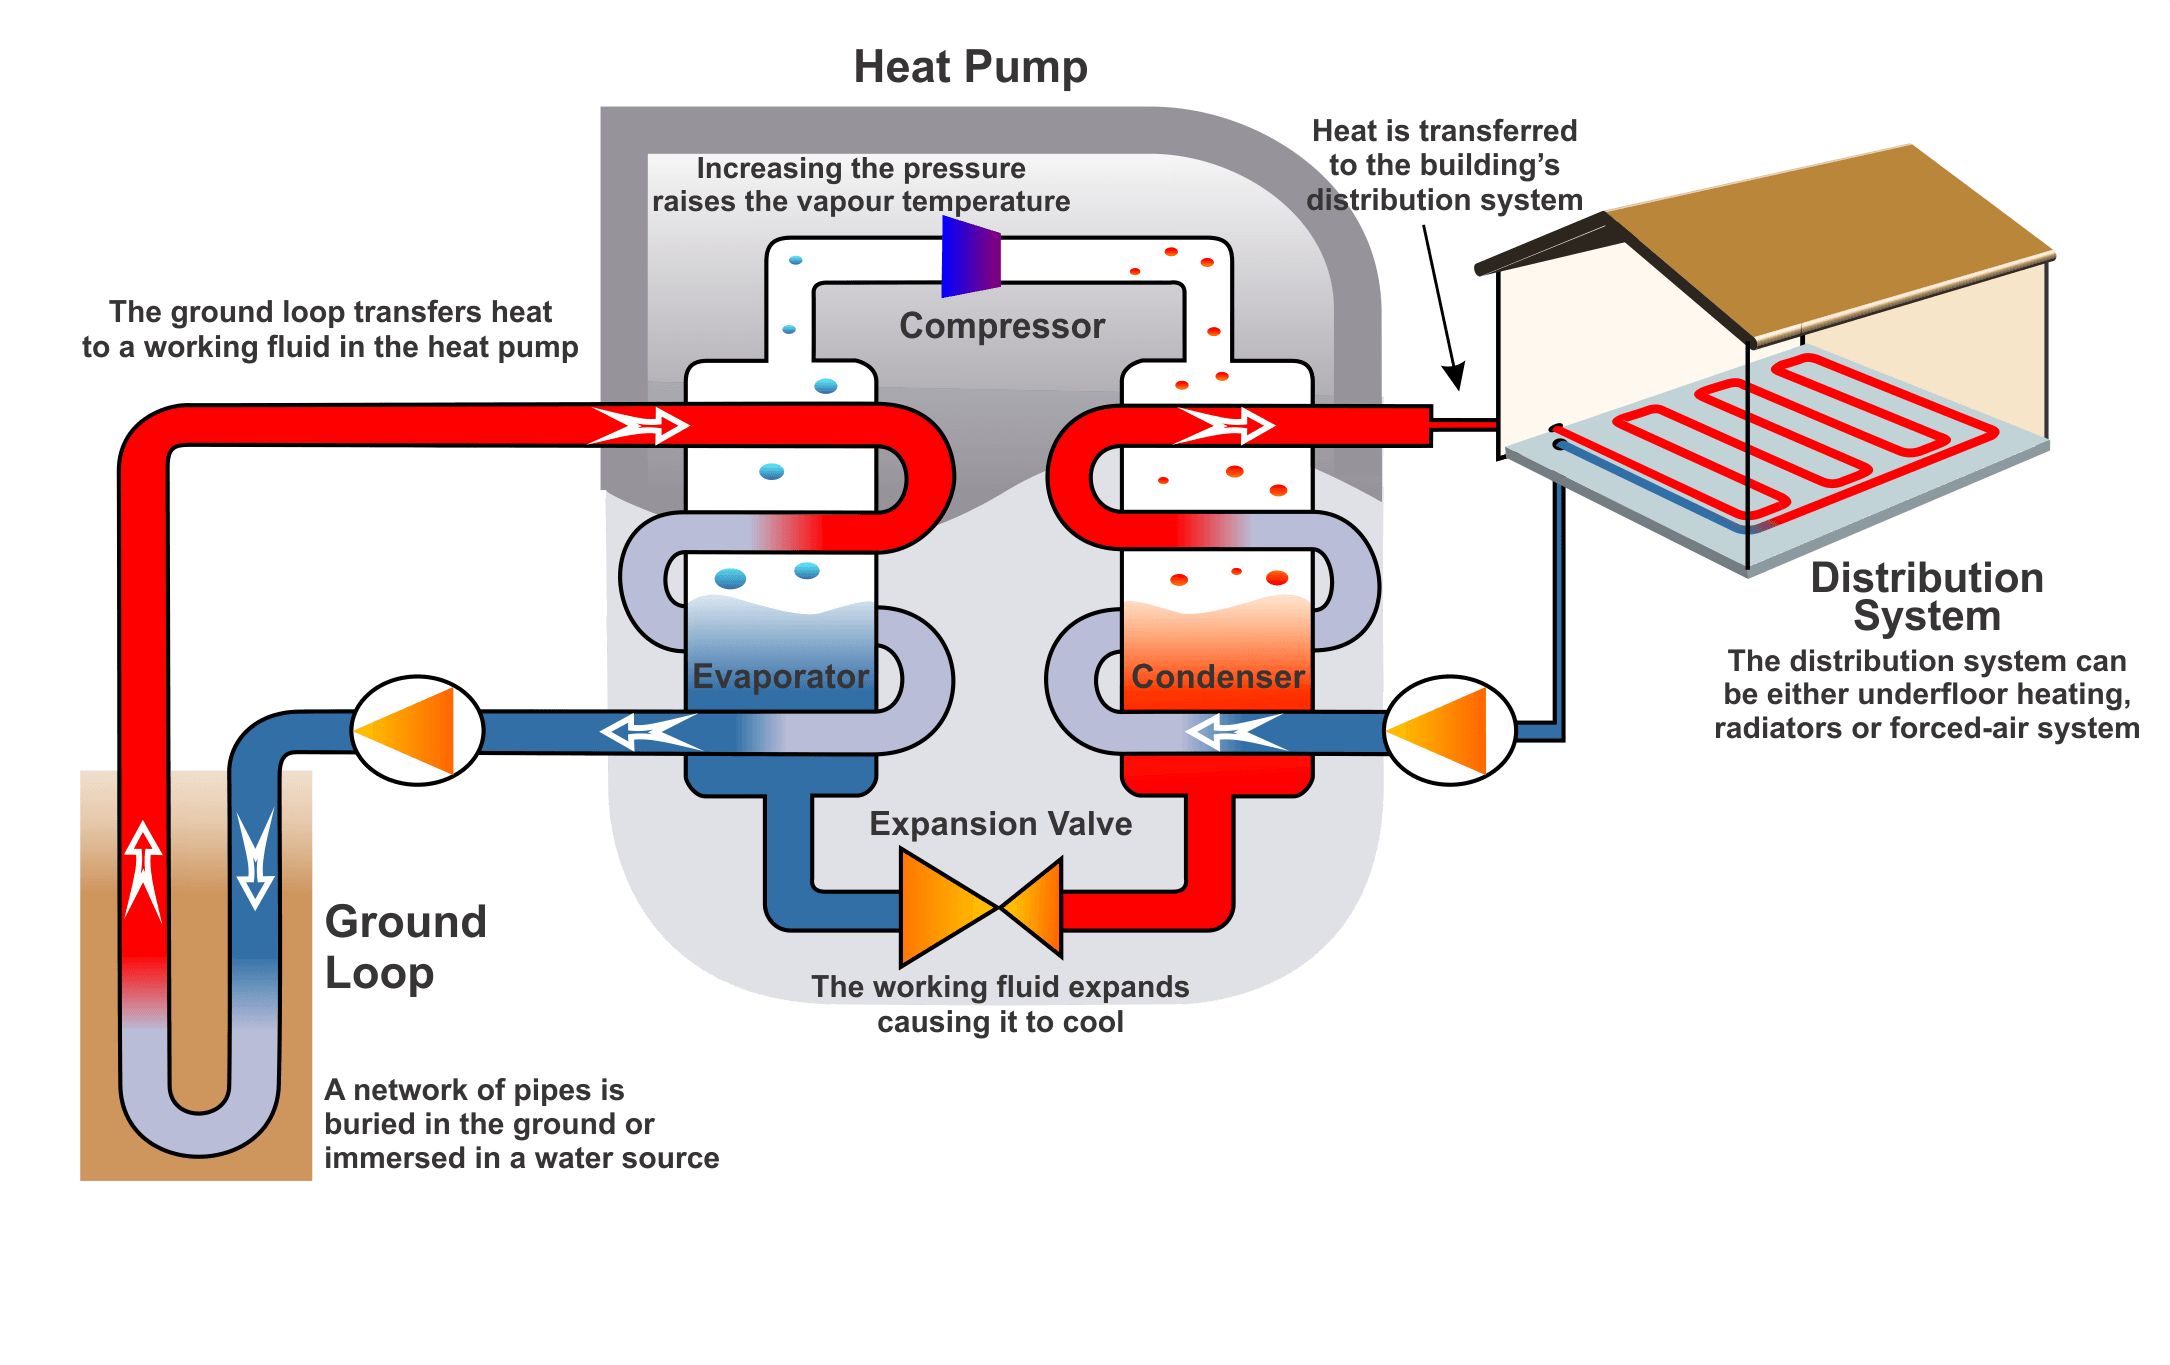 hight resolution of natural refrigerants could replace cfcs hcfcs and hfcs in geothermal heat pumps to reduce energy consumption and operating costs